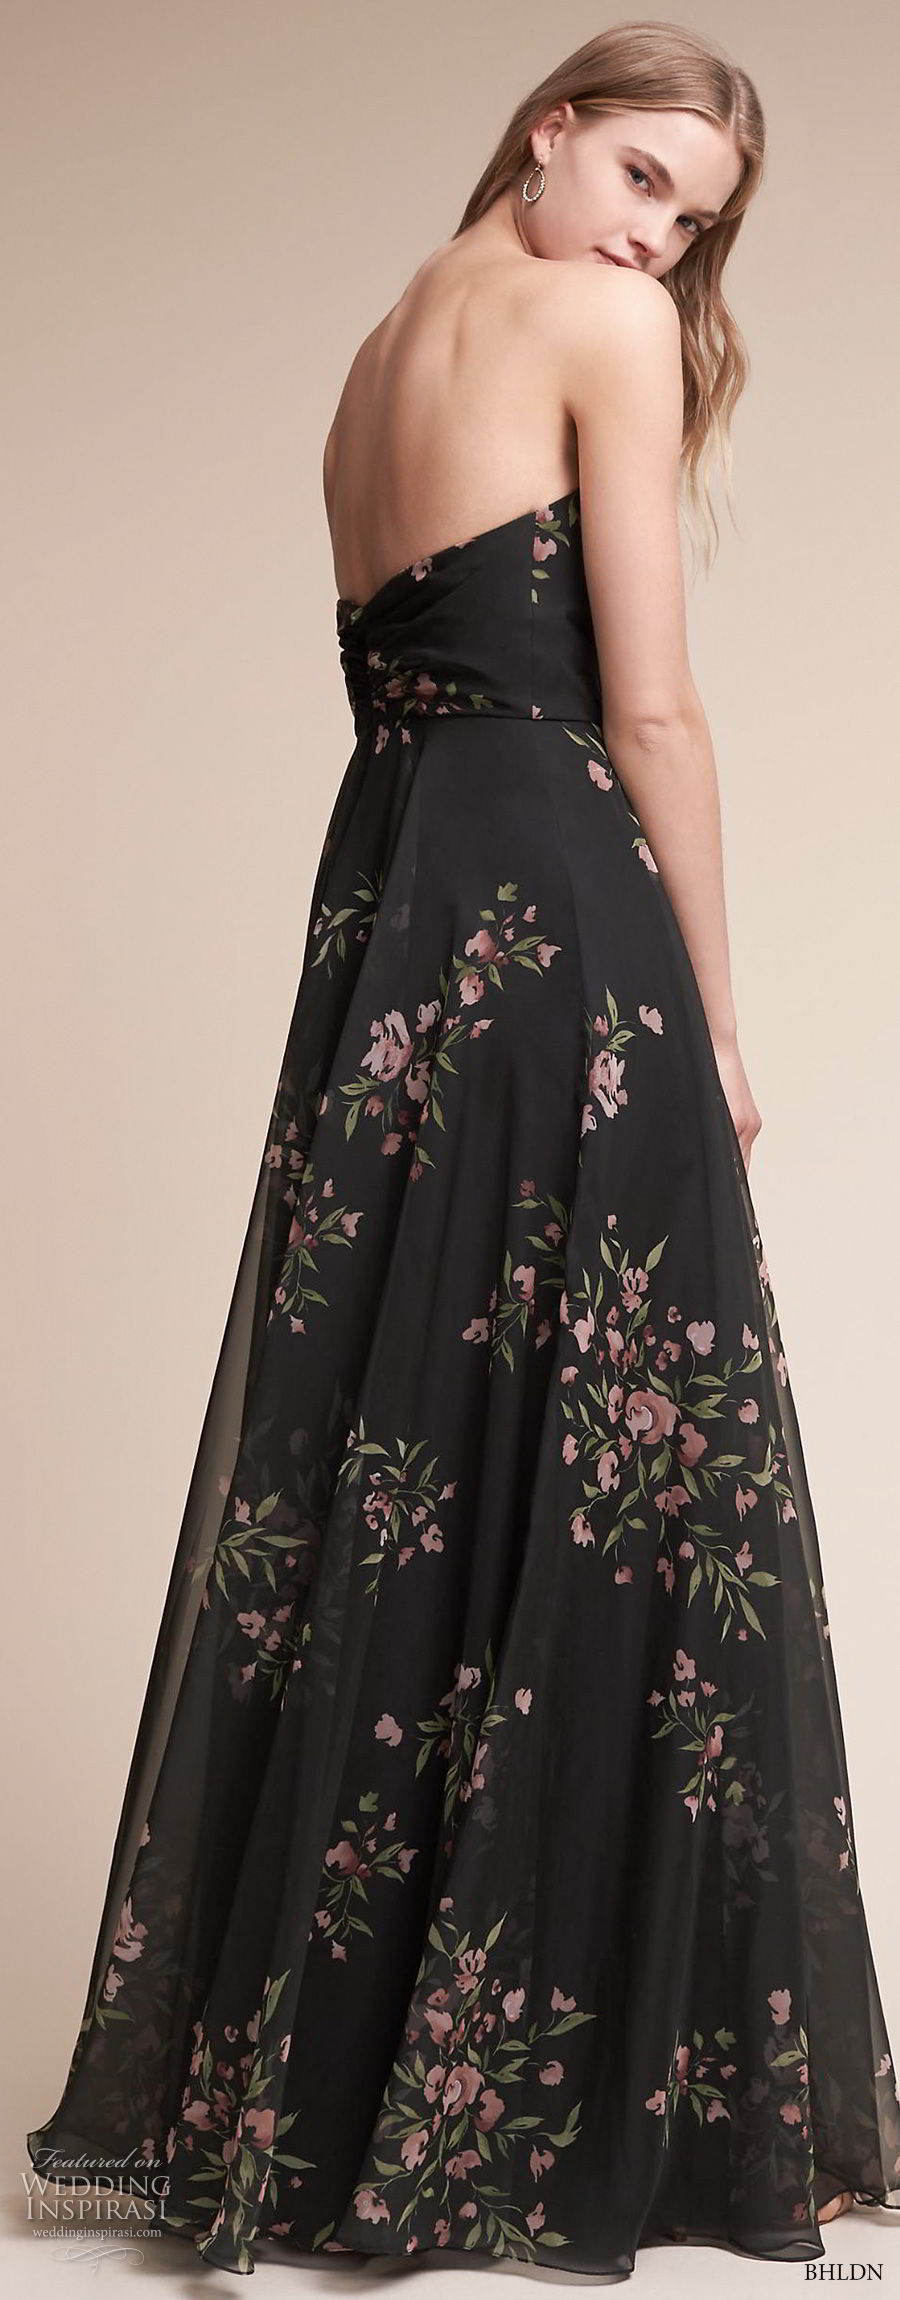 bhldn fall 2017  americana bridal strapless sweetheart neckline ruched wrap over bodice flora prints black color high waist soft a  line wedding dress sweep train (adeline) bv